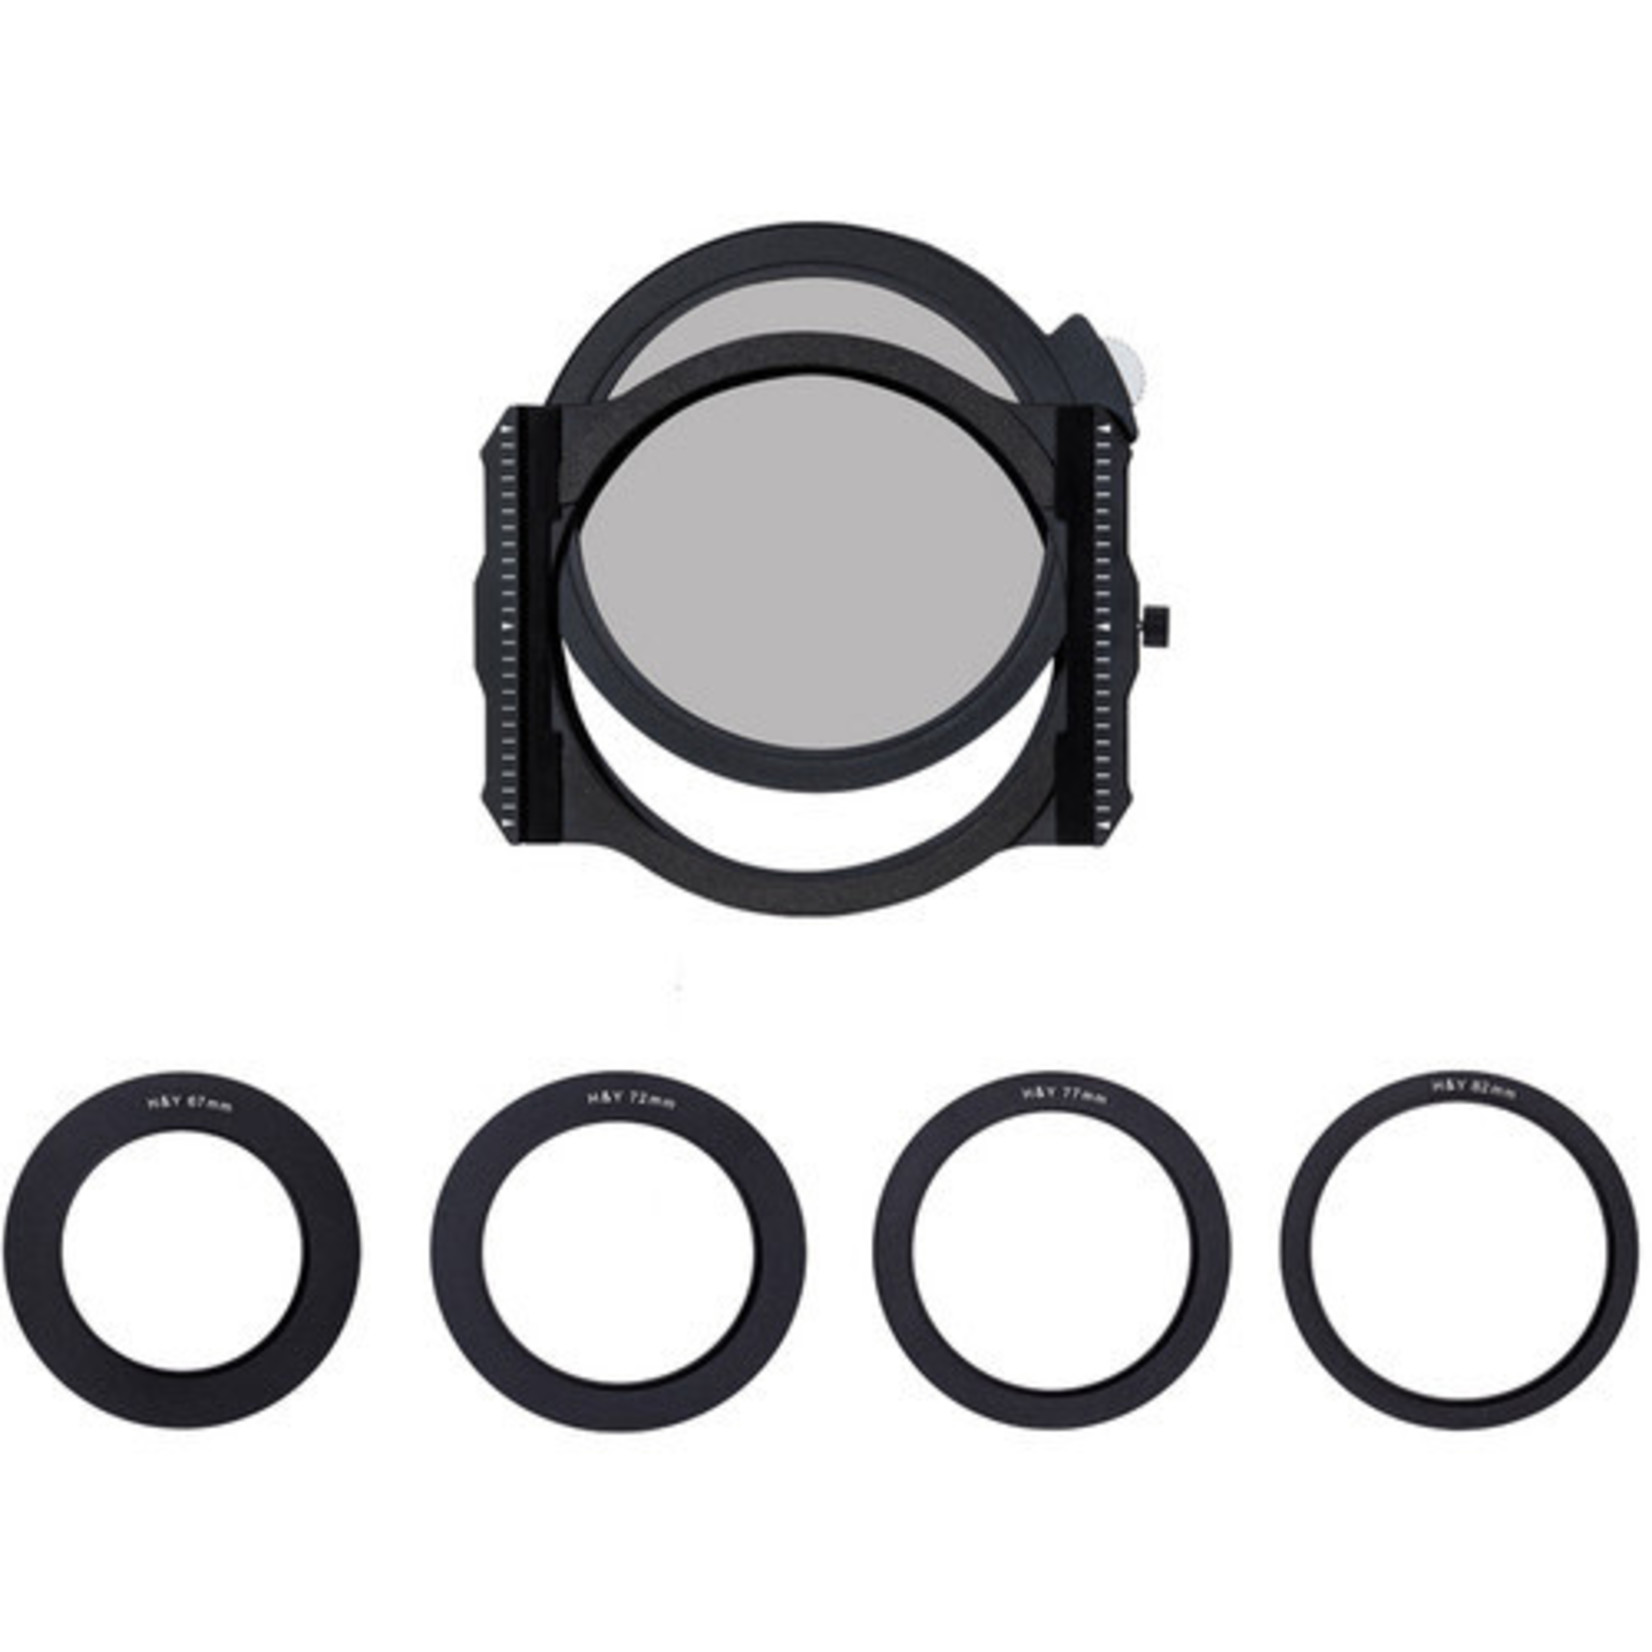 H&Y Square Filter Holder with Circular Polarizer and adapter rings